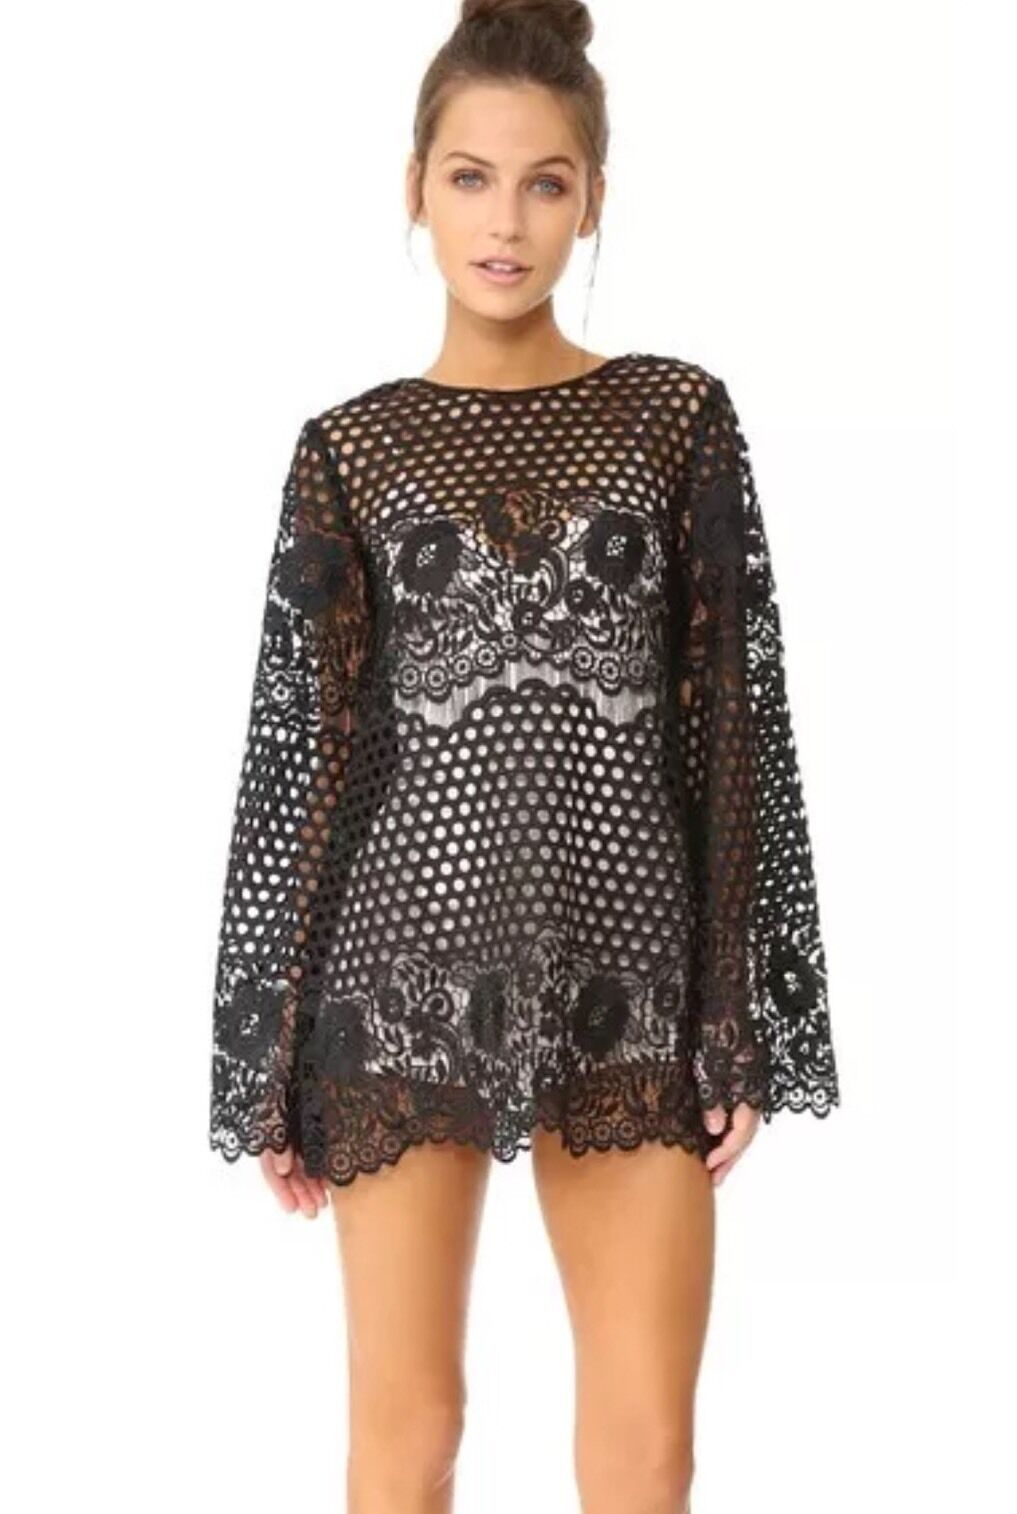 NEW  Alice McCall 'Like I Would' schwarz Crochet Lace Dress Größe 0 Cover Up